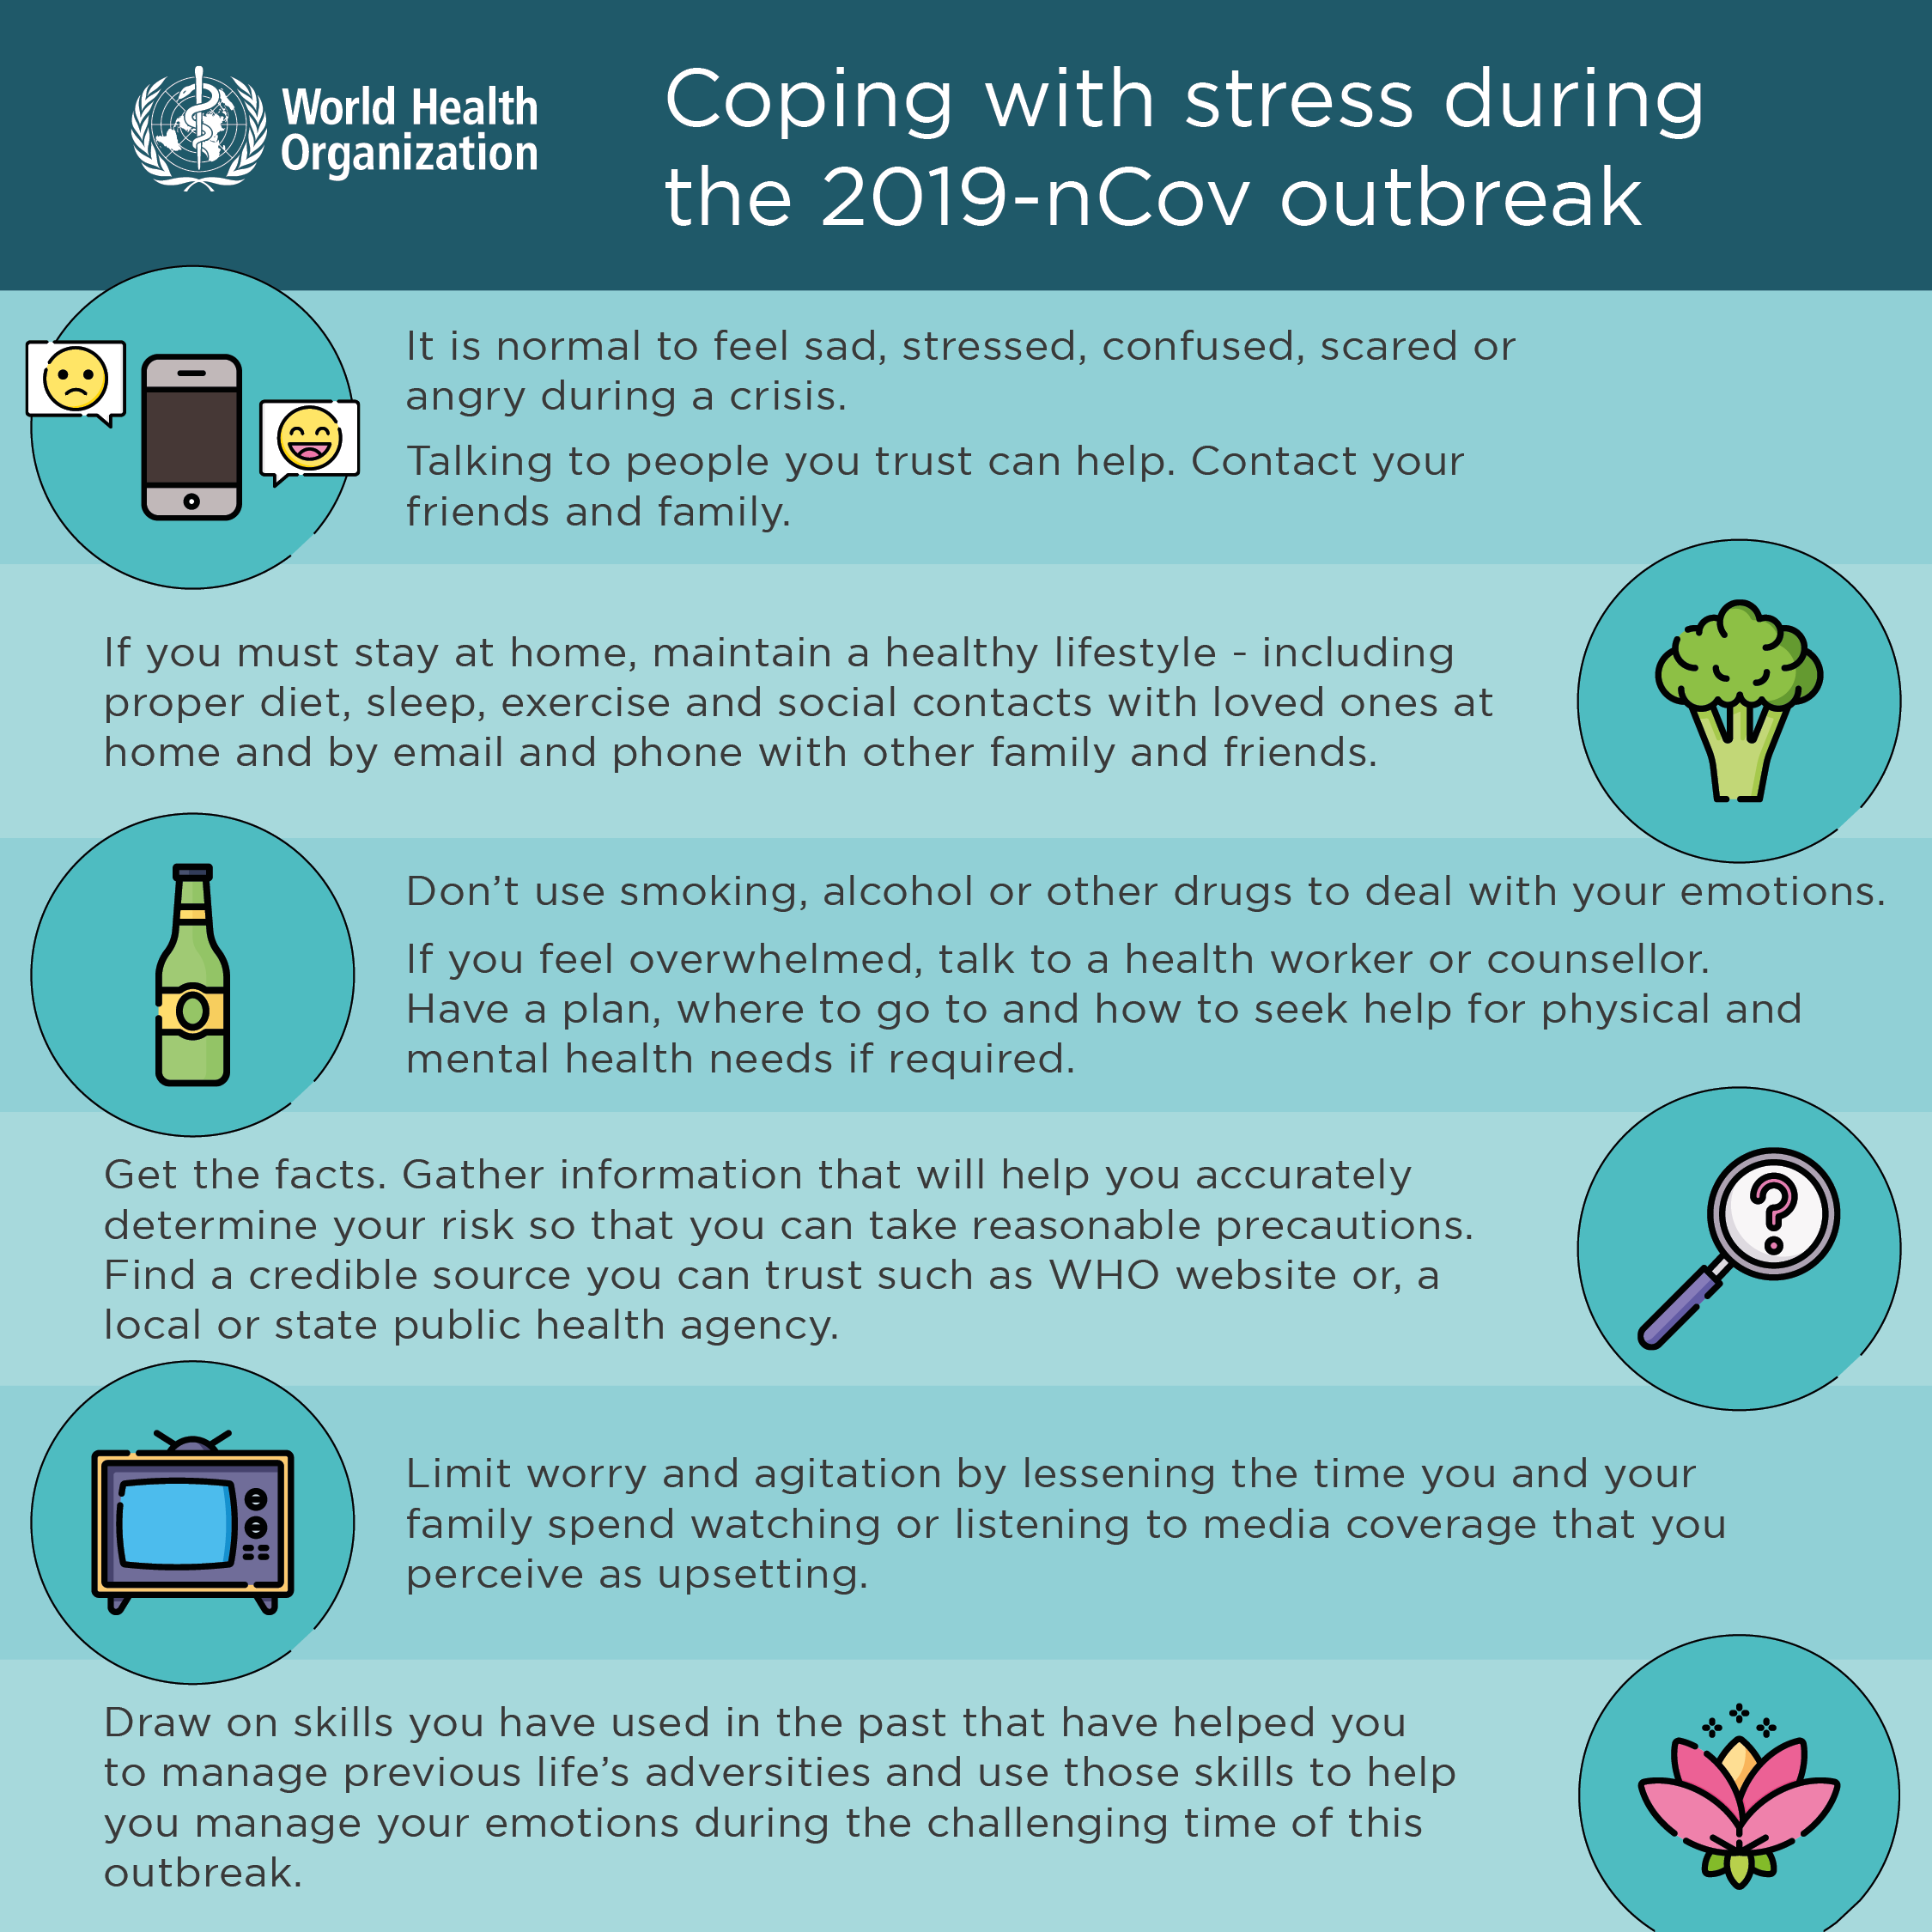 Coping with Stress during COVID 19 outbreak